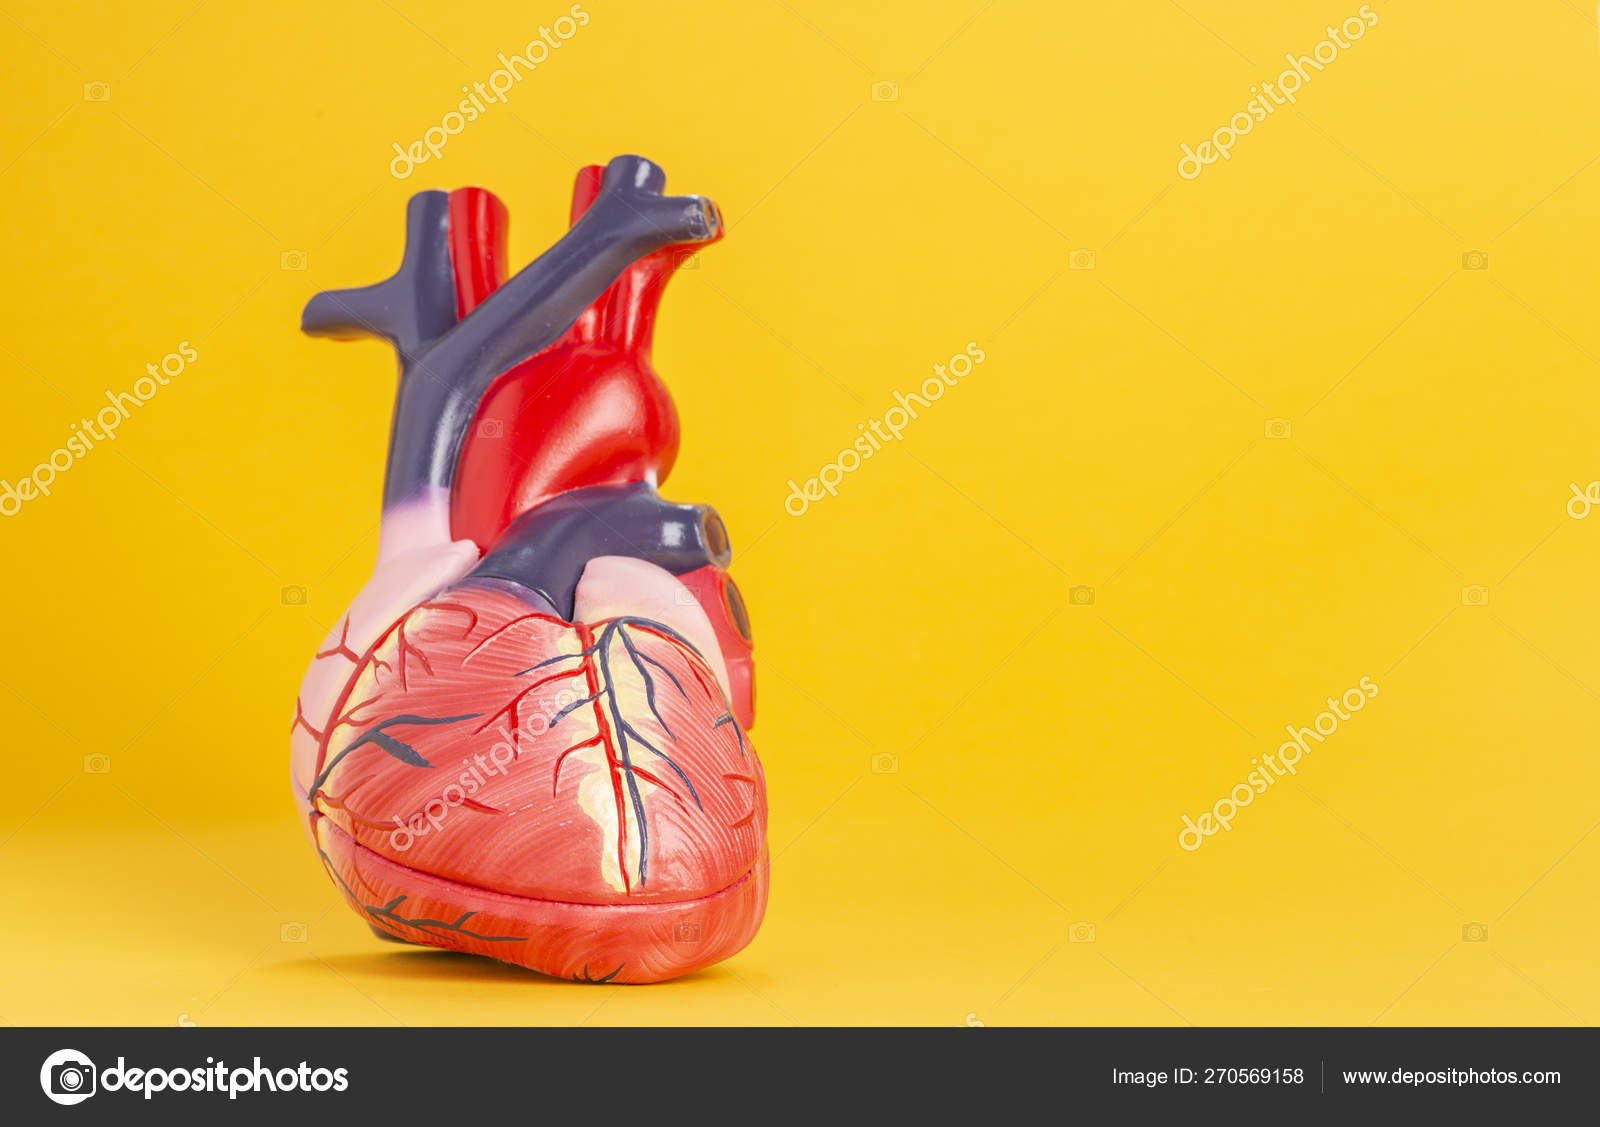 Isolated model of a human heart on yellow background